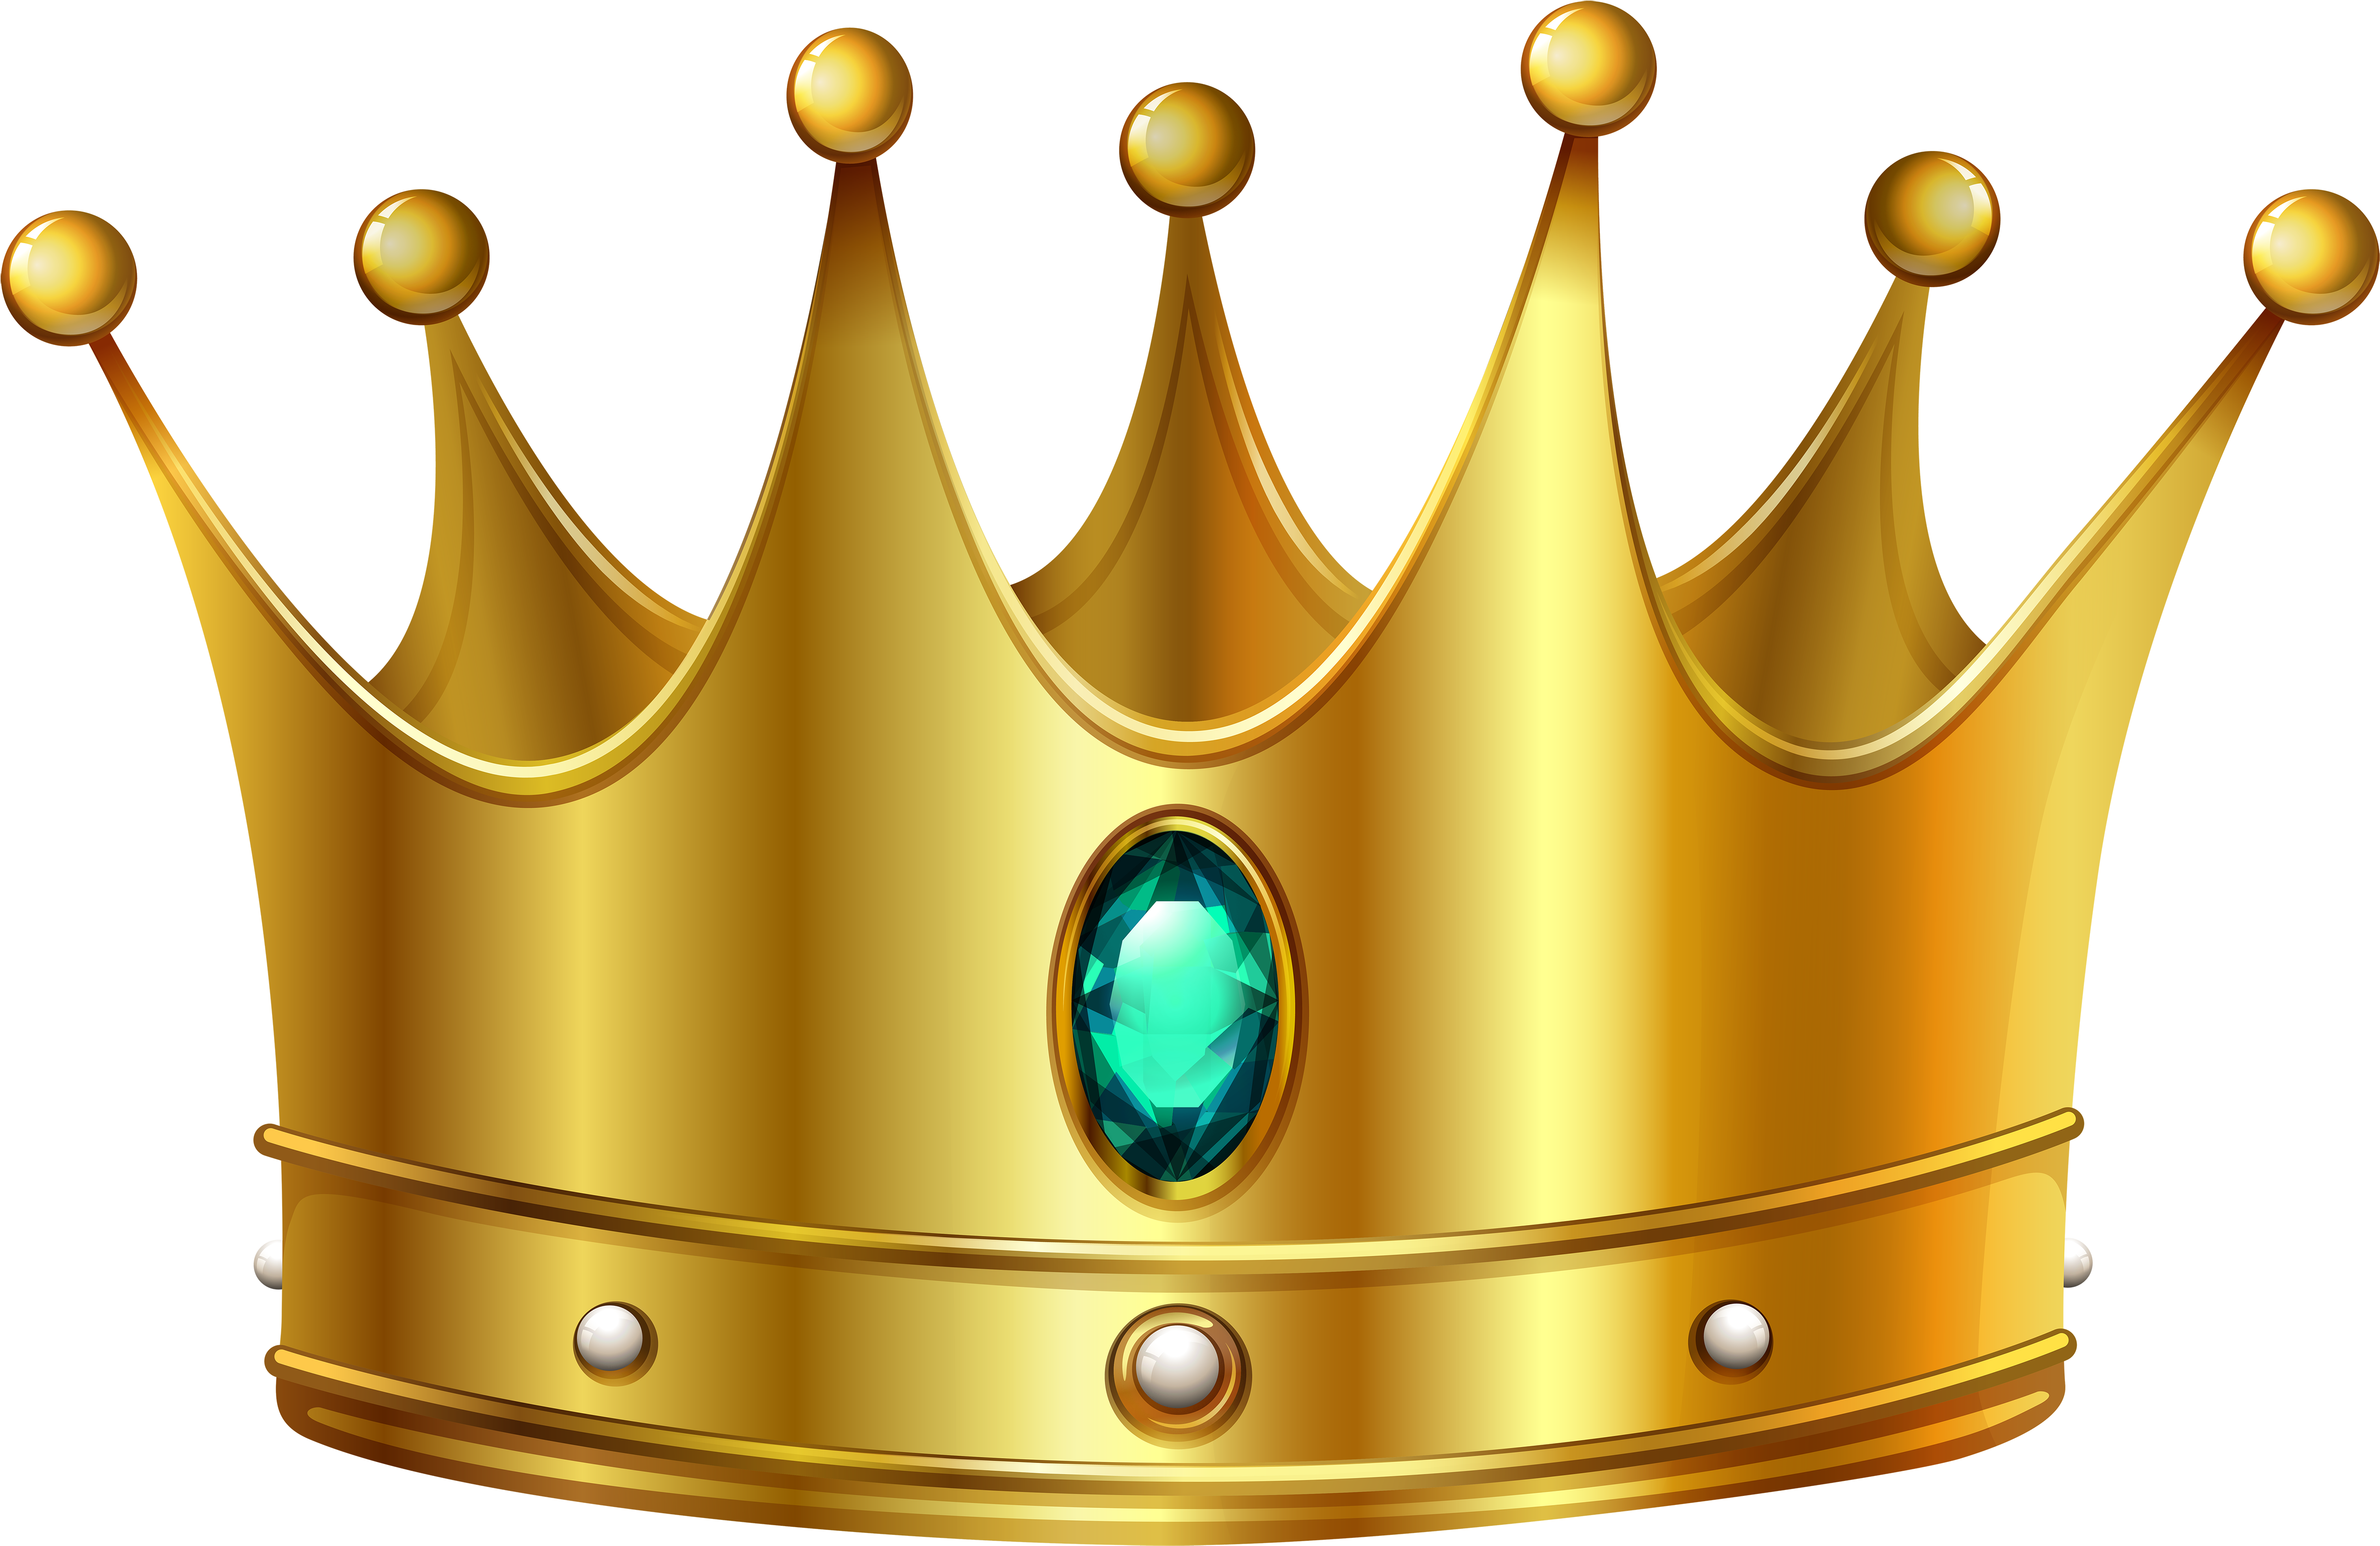 Royalty free clipart crown. Download png images no